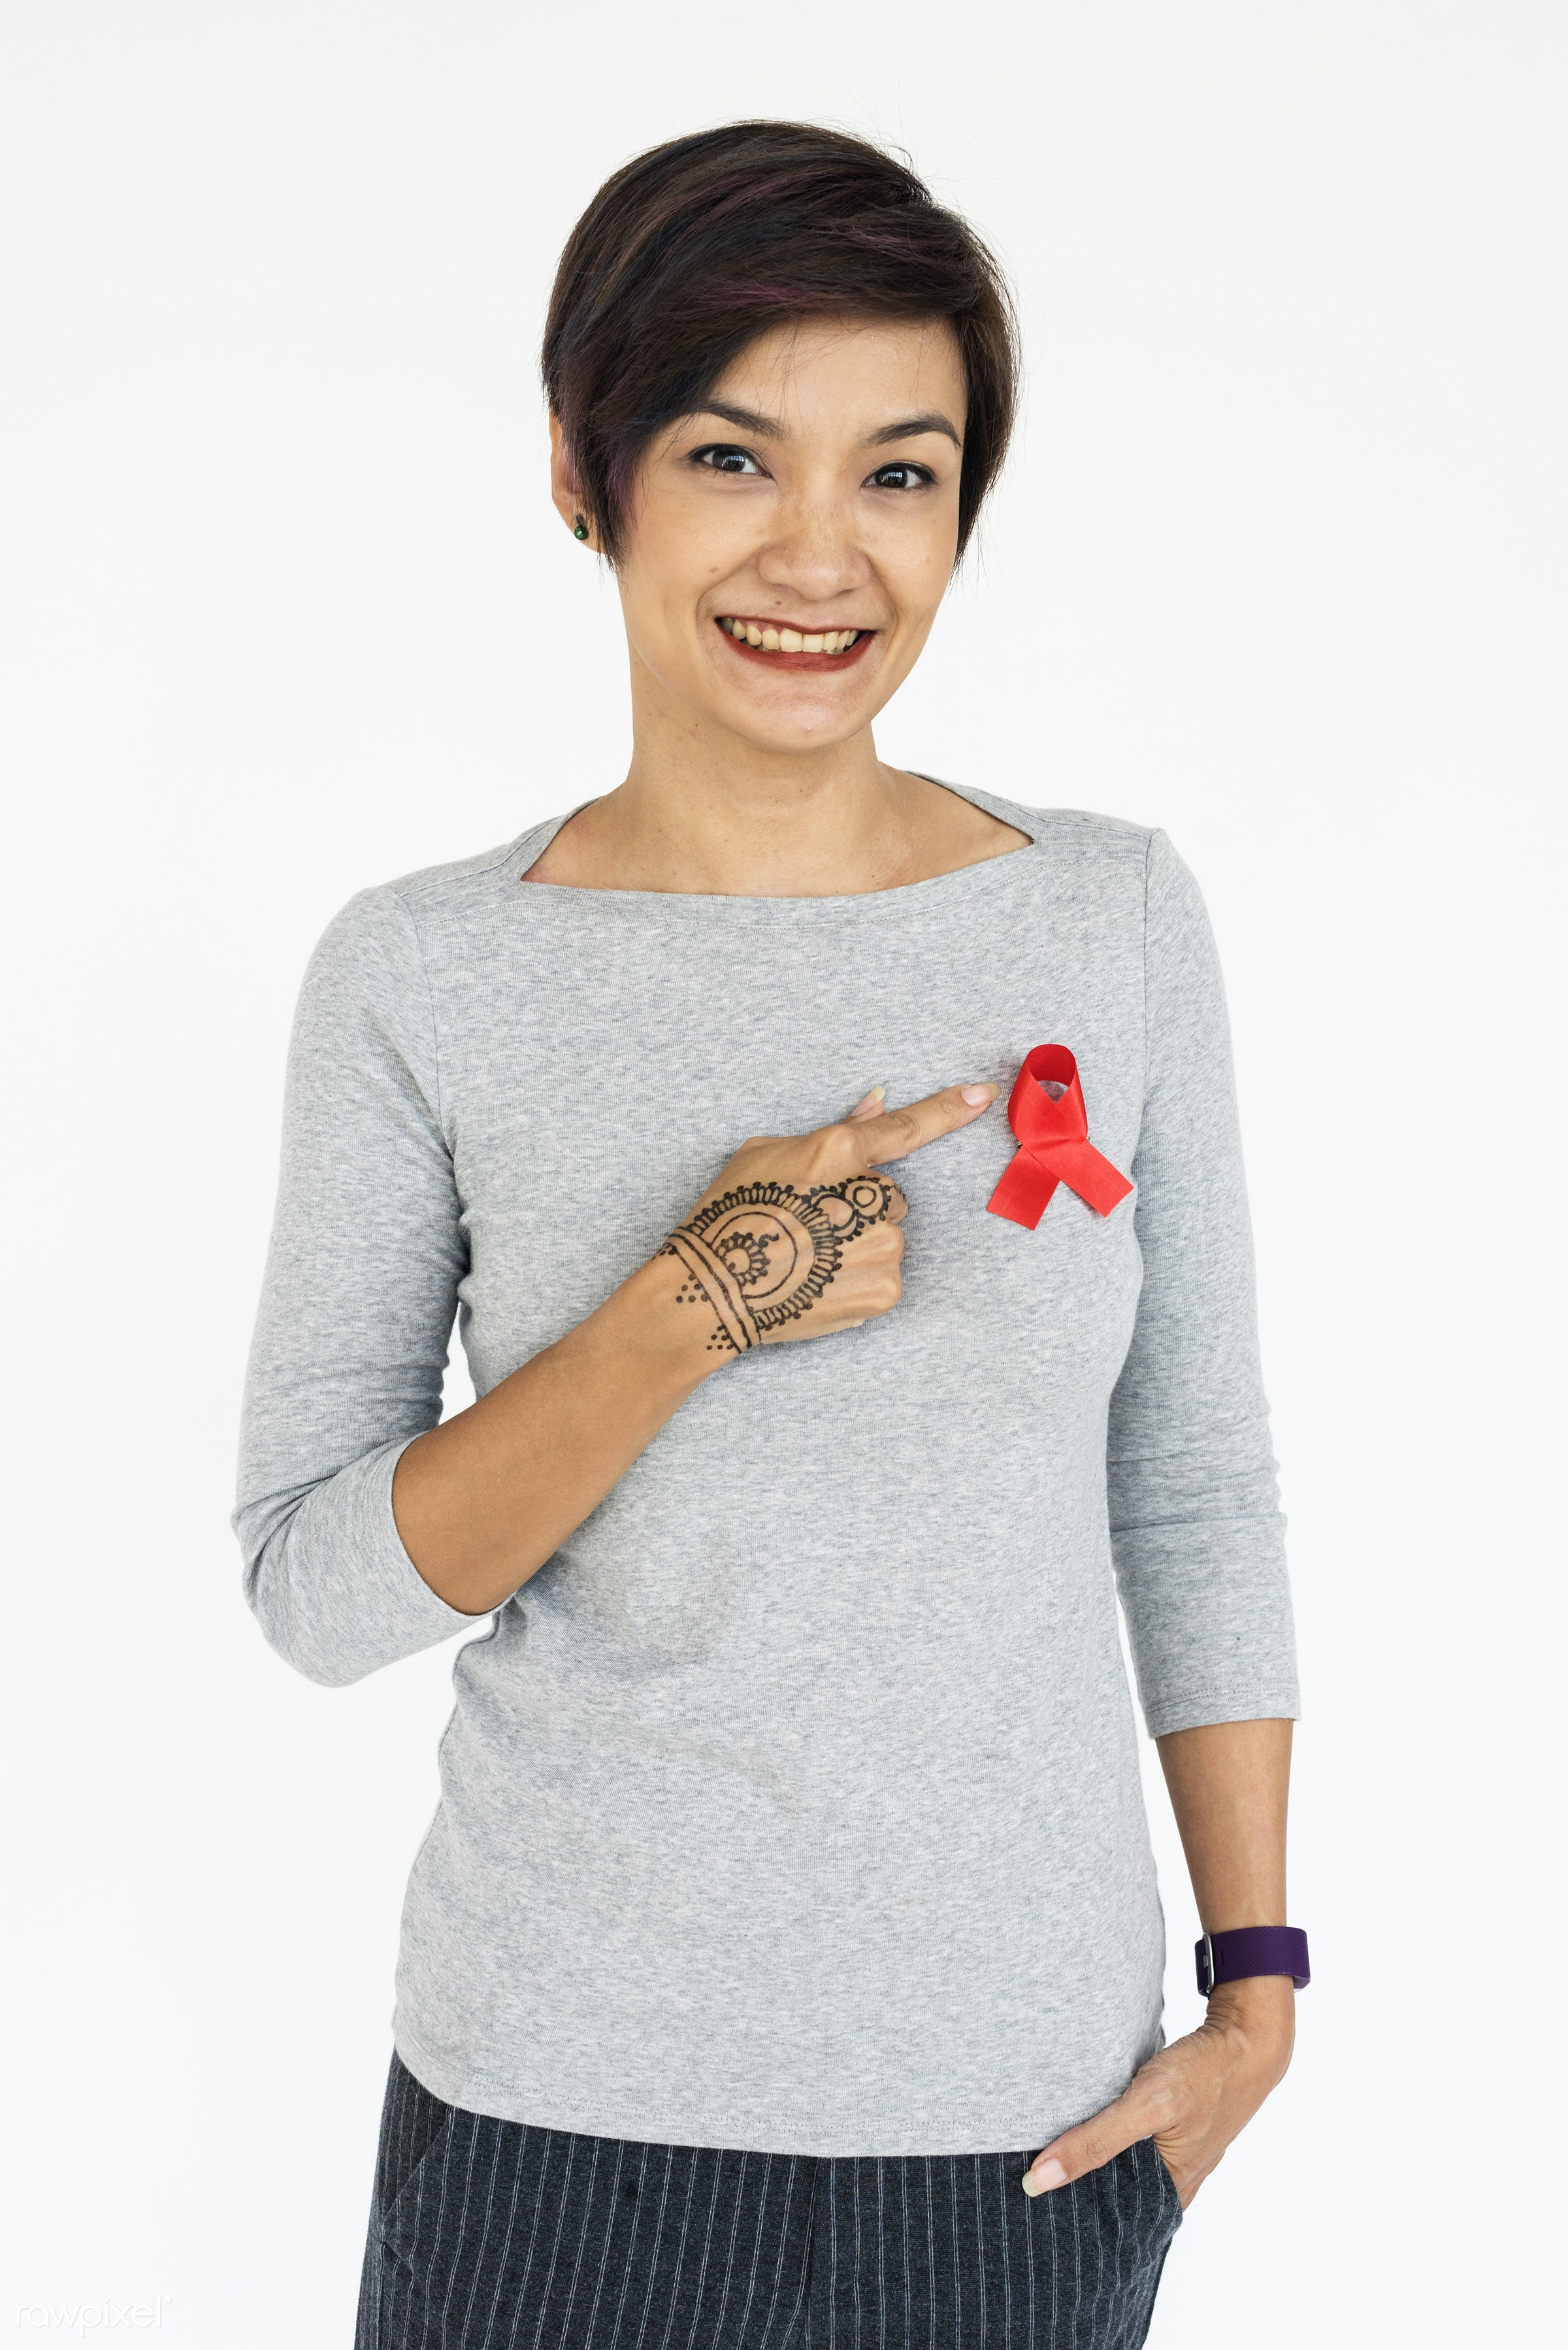 studio, expression, person, red ribbon, awareness, people, hiv, woman, smile, cheerful, smiling, isolated, white, happiness...